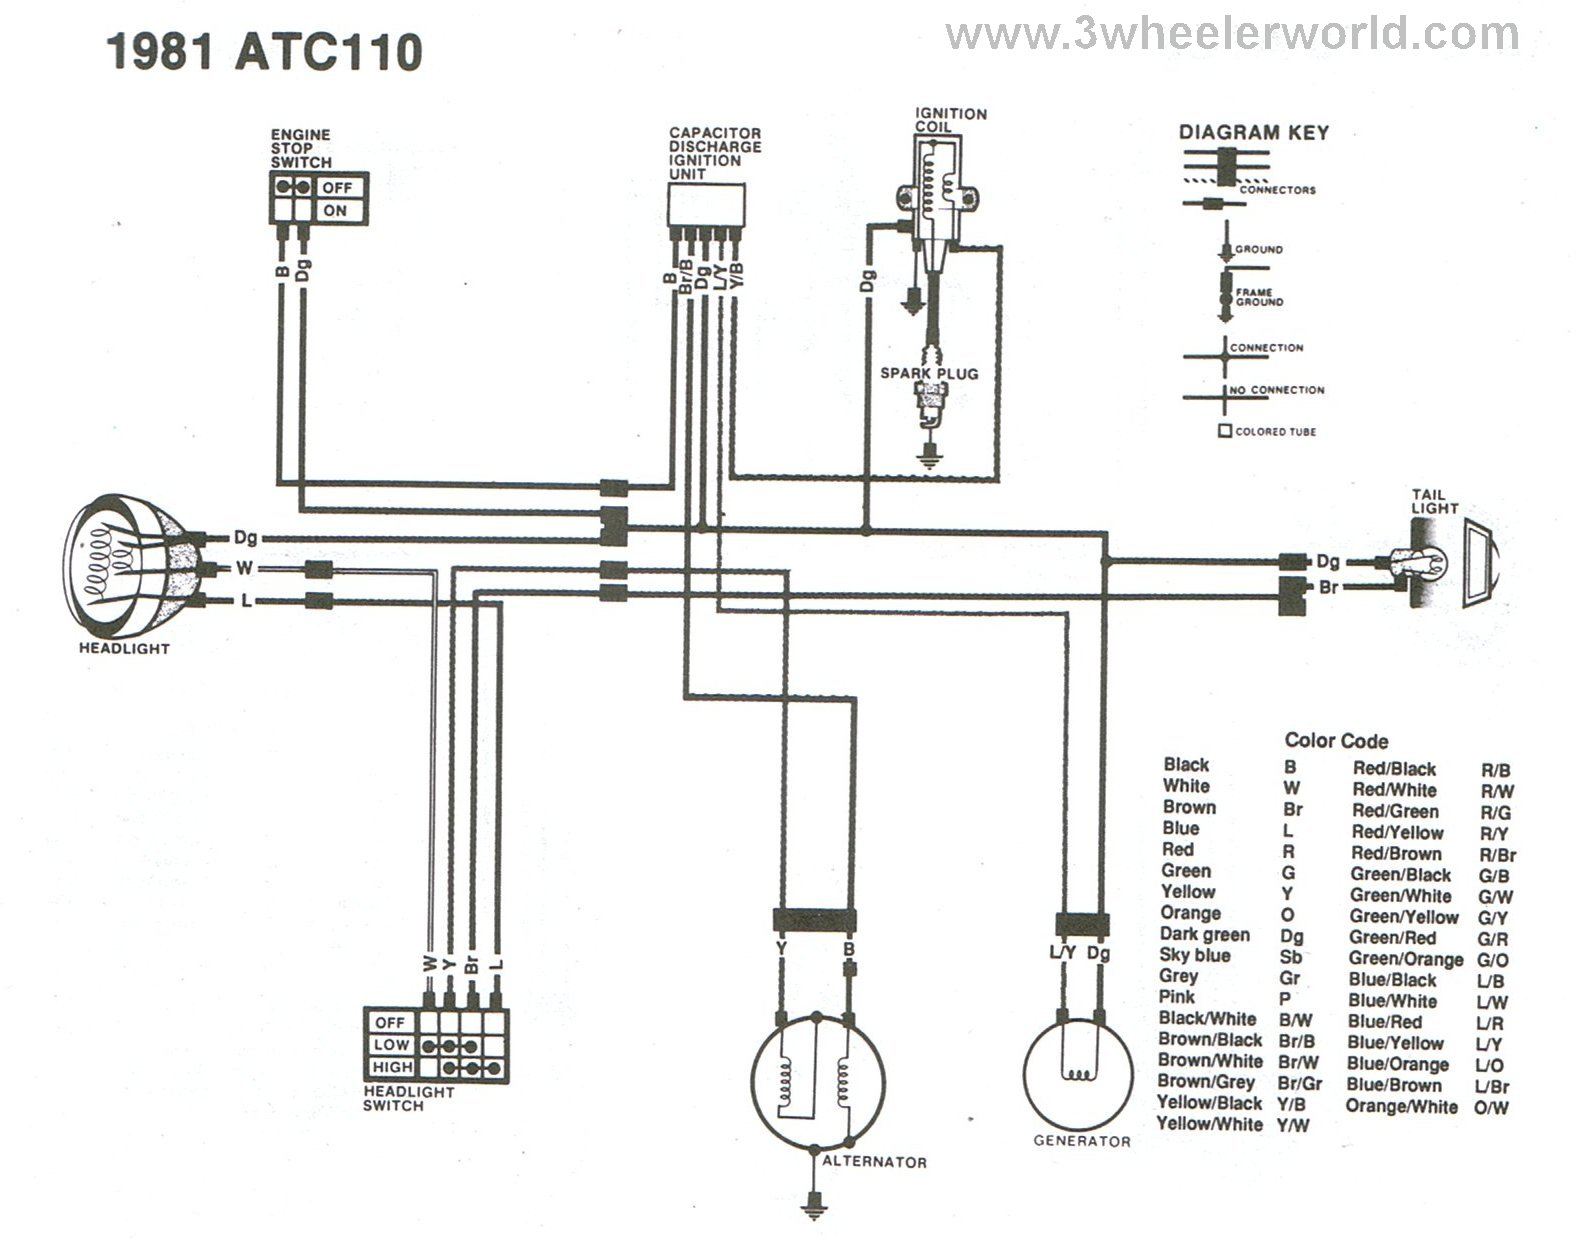 1980 Honda Atc 110 Wiring Diagram Trusted Wiring Diagram Source · ATC110  1981